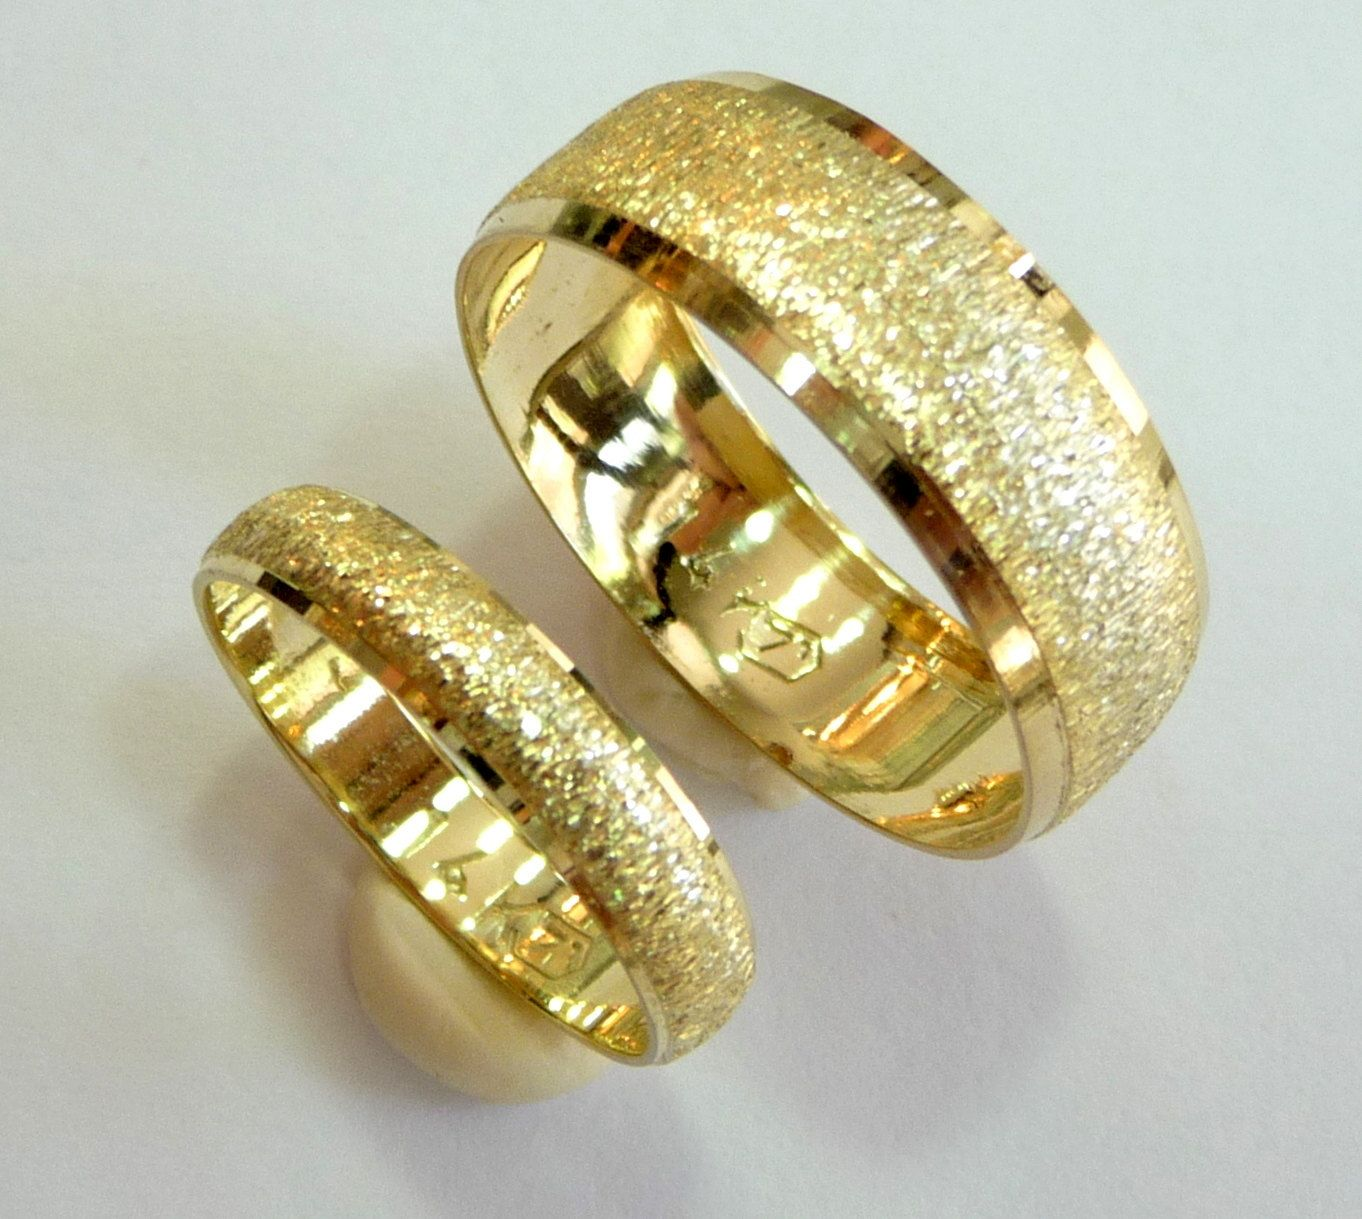 16 wedding bands set gold wedding rings for men and women 14k gold http - Gold Wedding Rings For Men